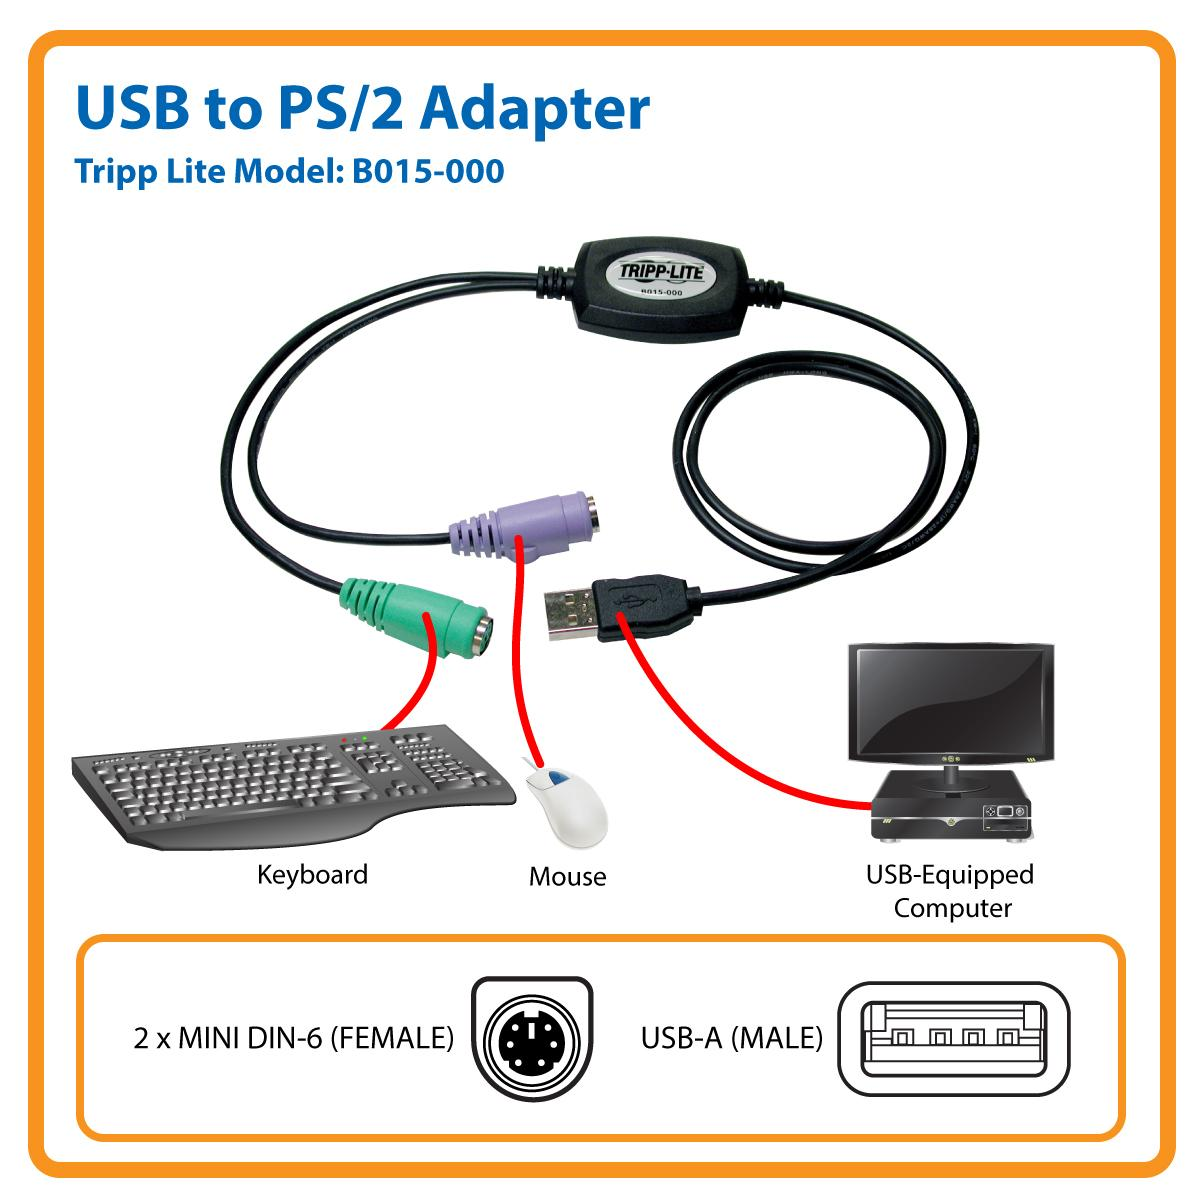 ps2 to usb wiring diagram   25 wiring diagram images